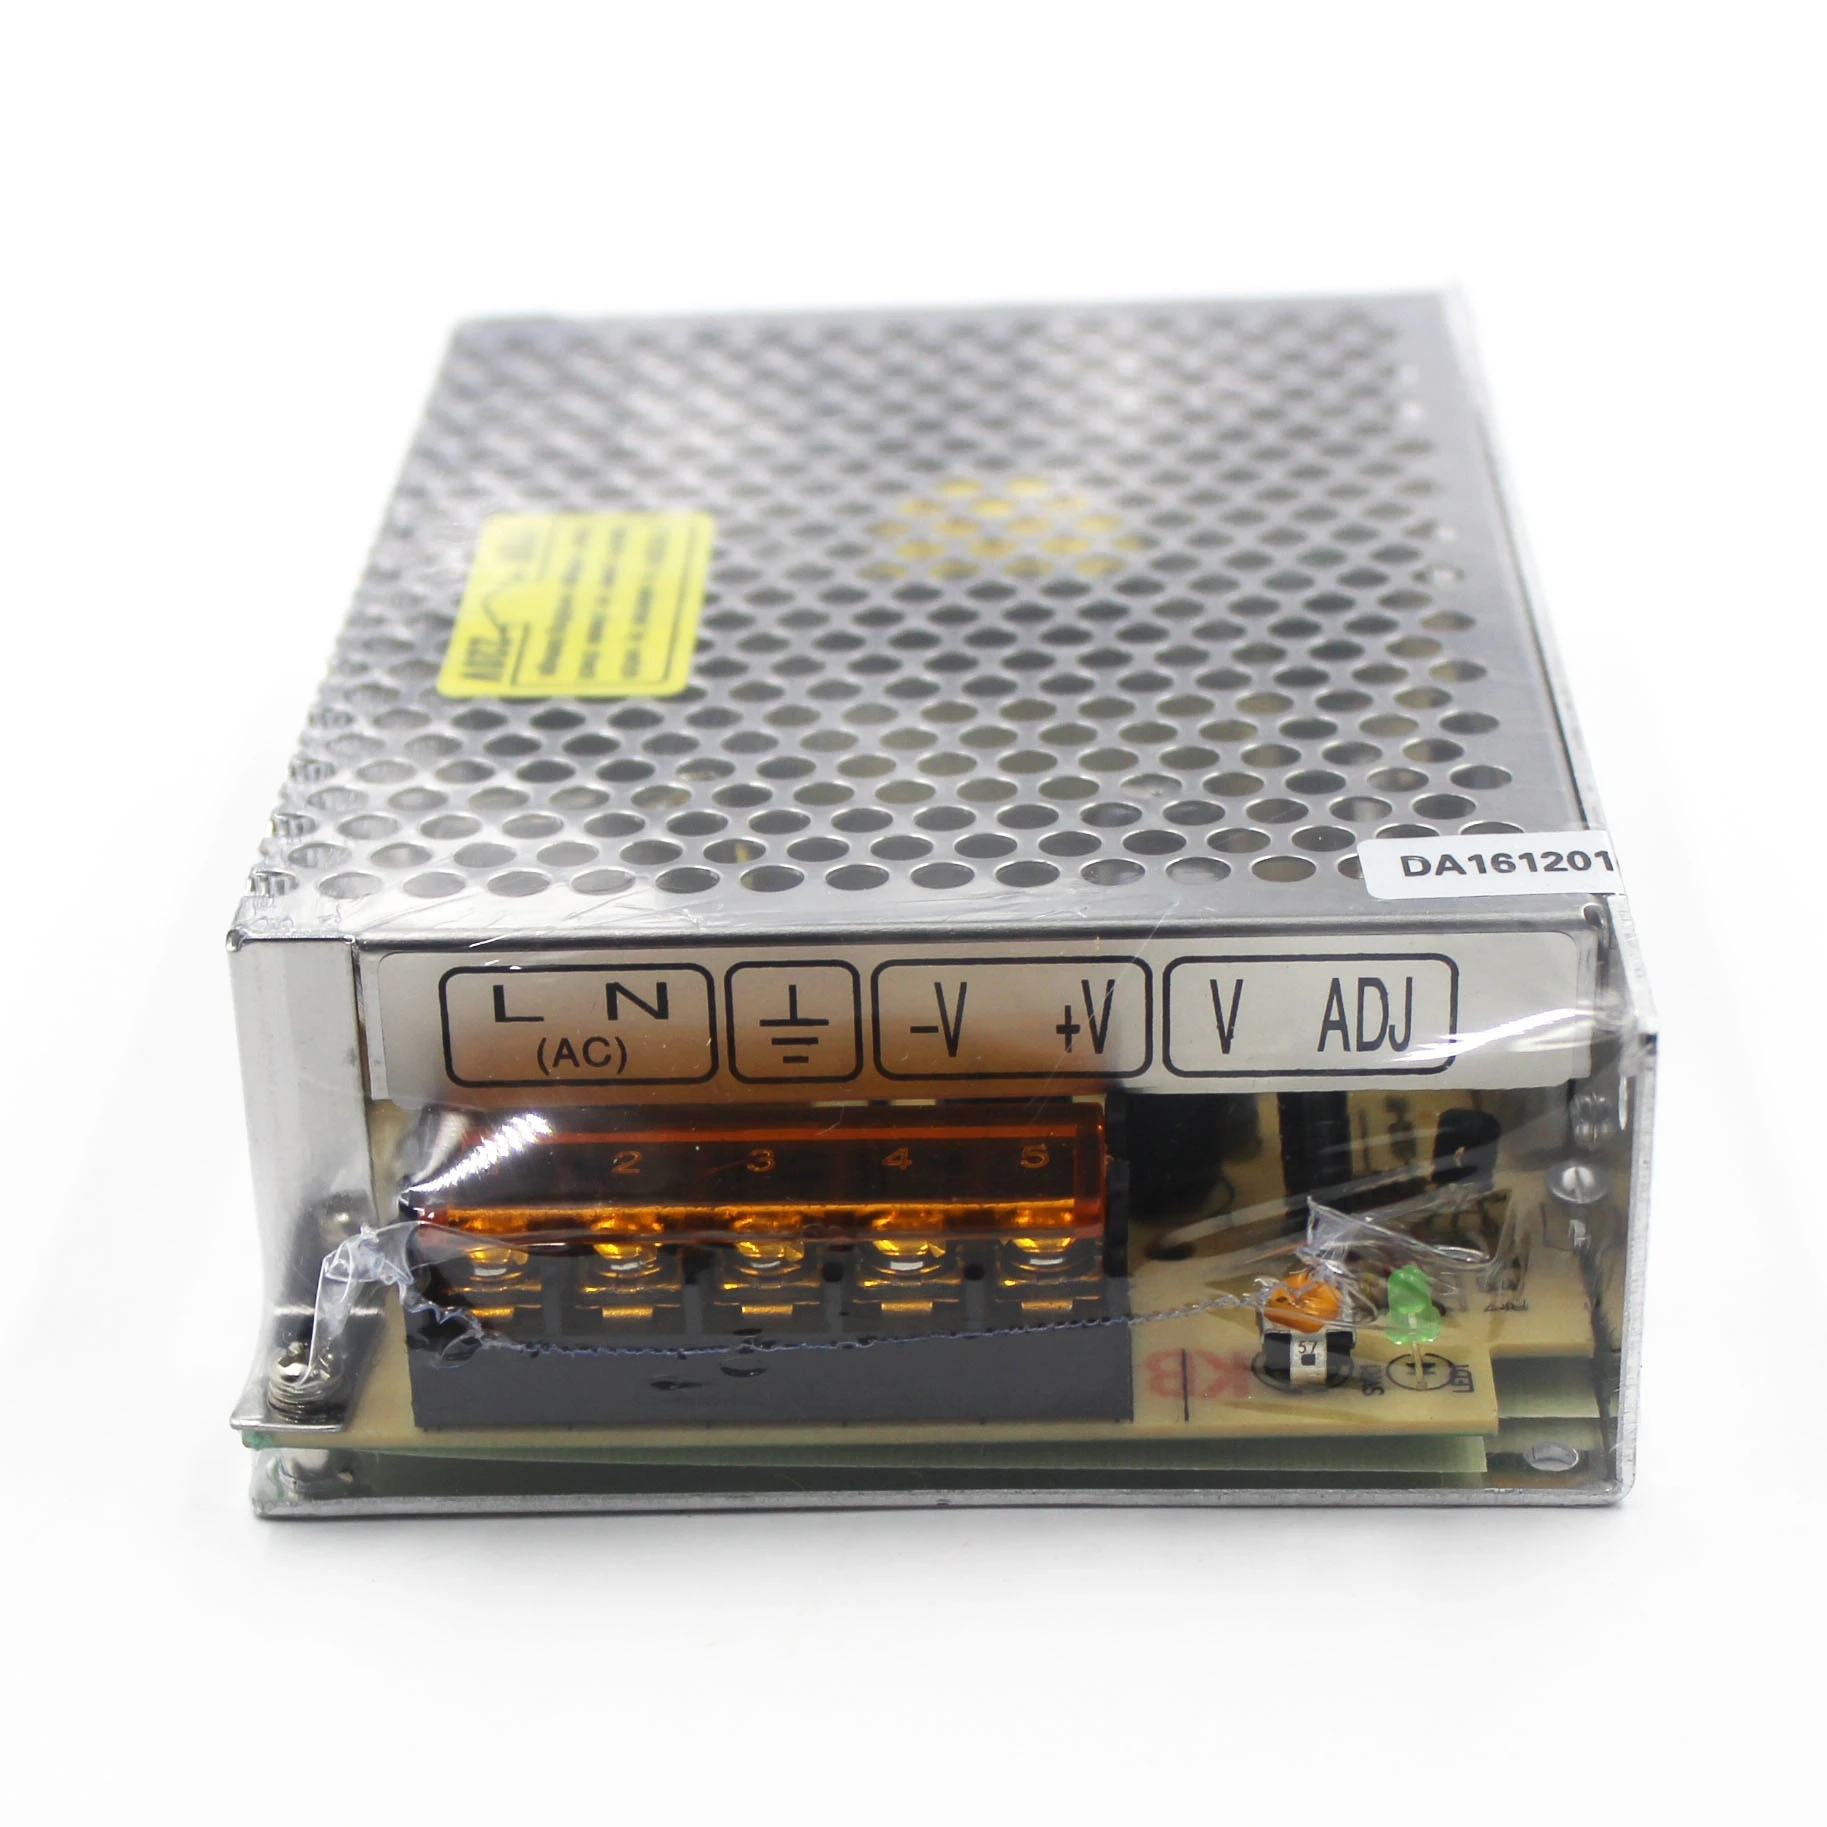 S-50-24 50W 24V Output Single Output Switching Power Supply